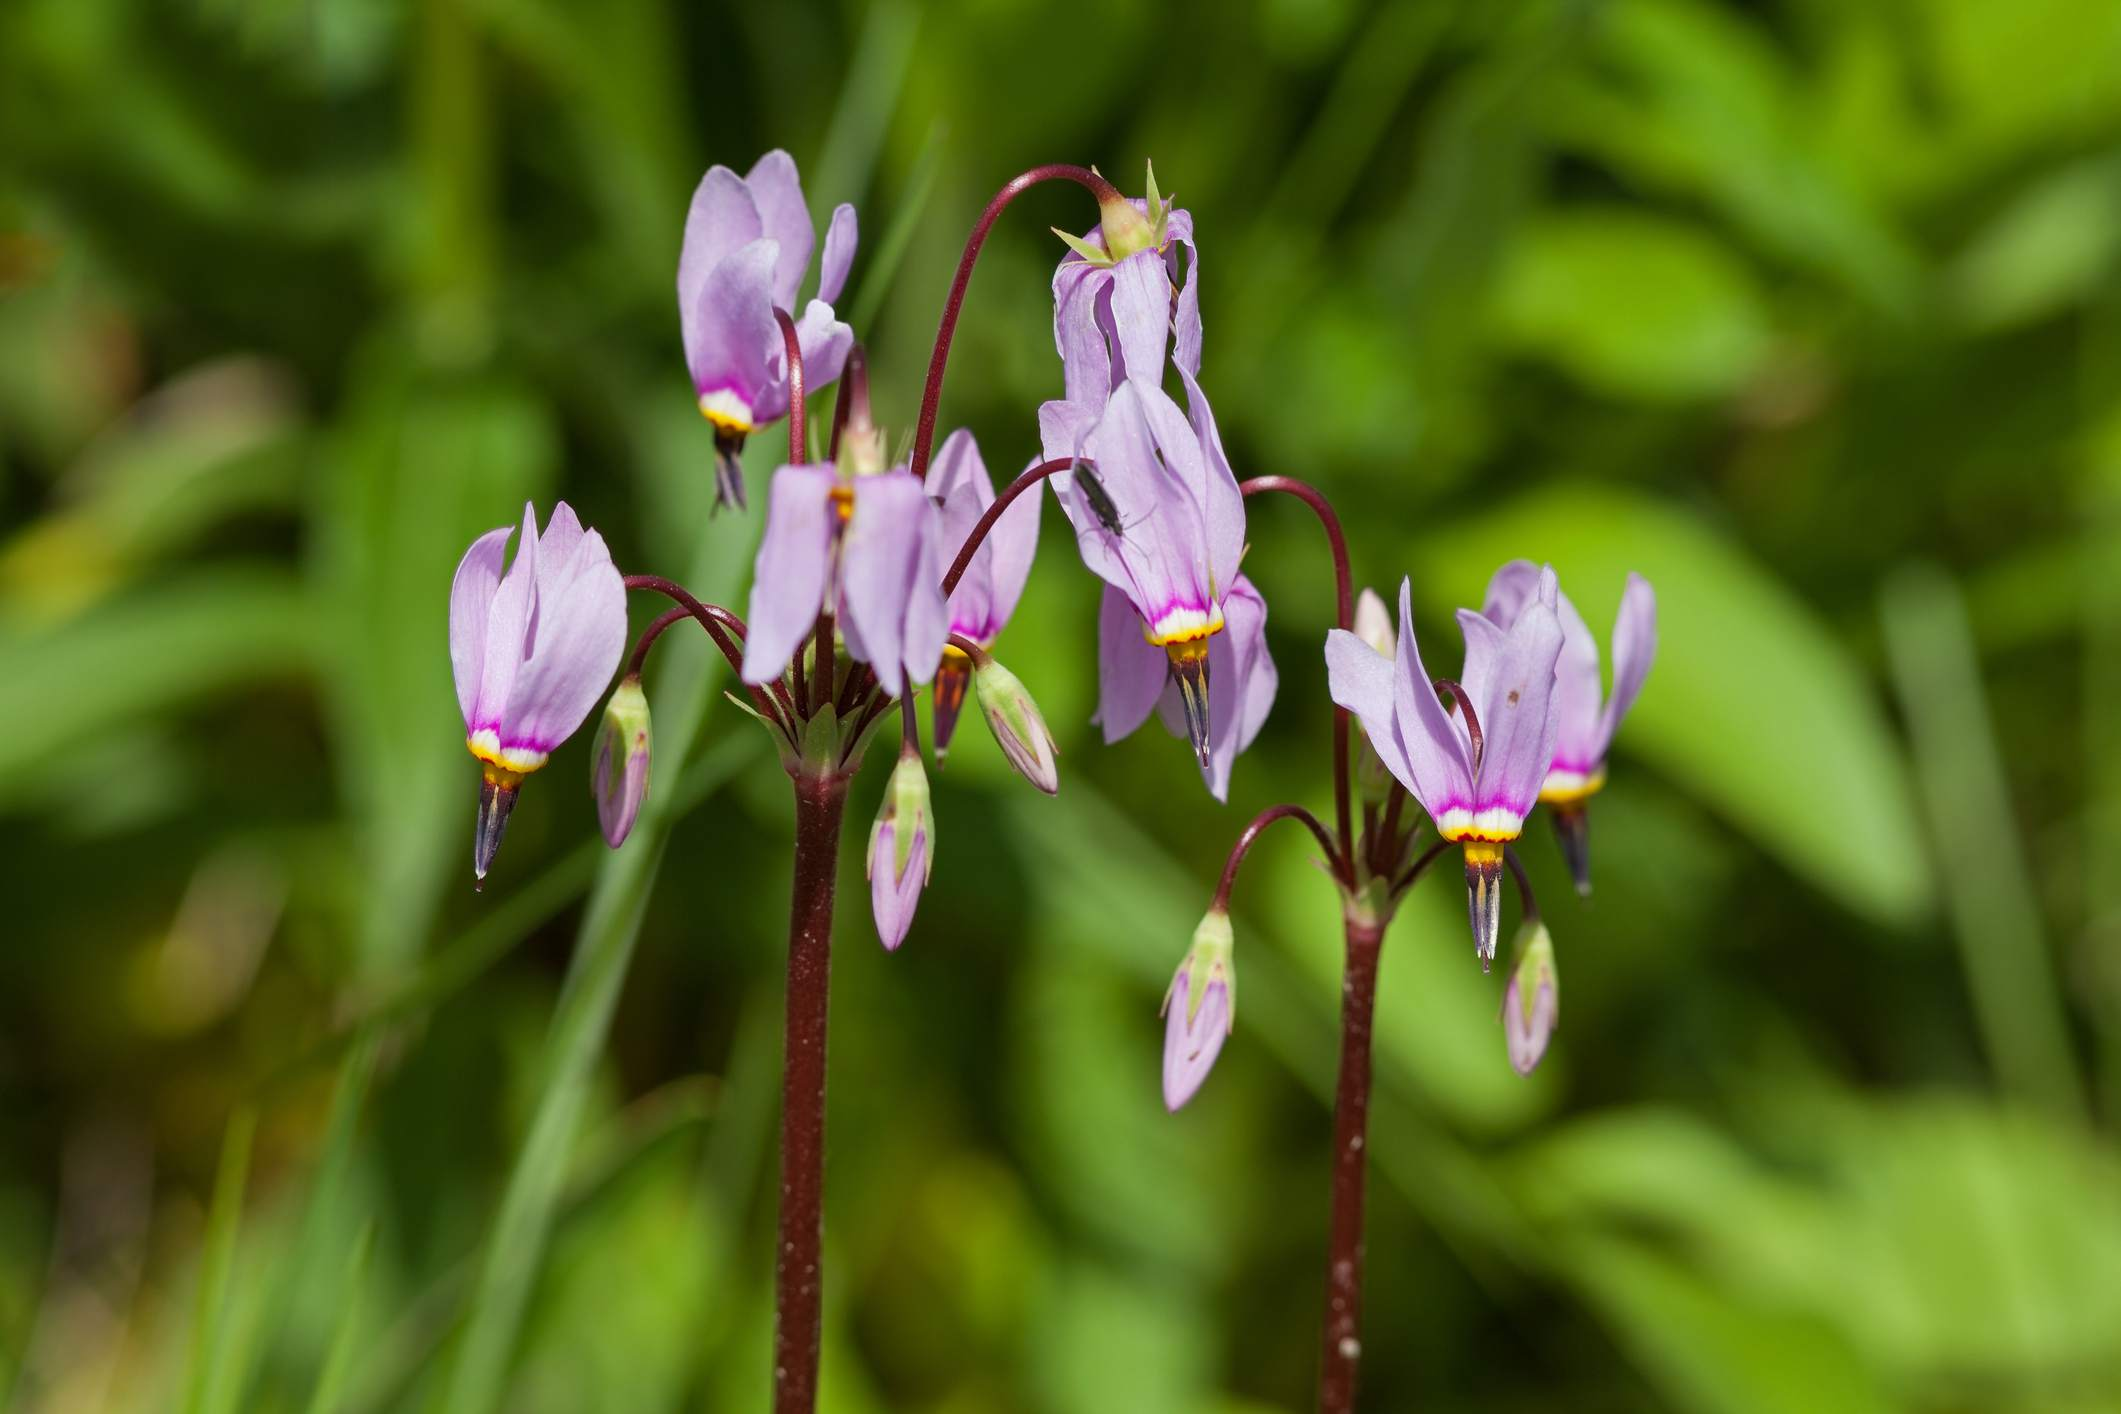 Shootingstar (Dodecatheon pulchellum)